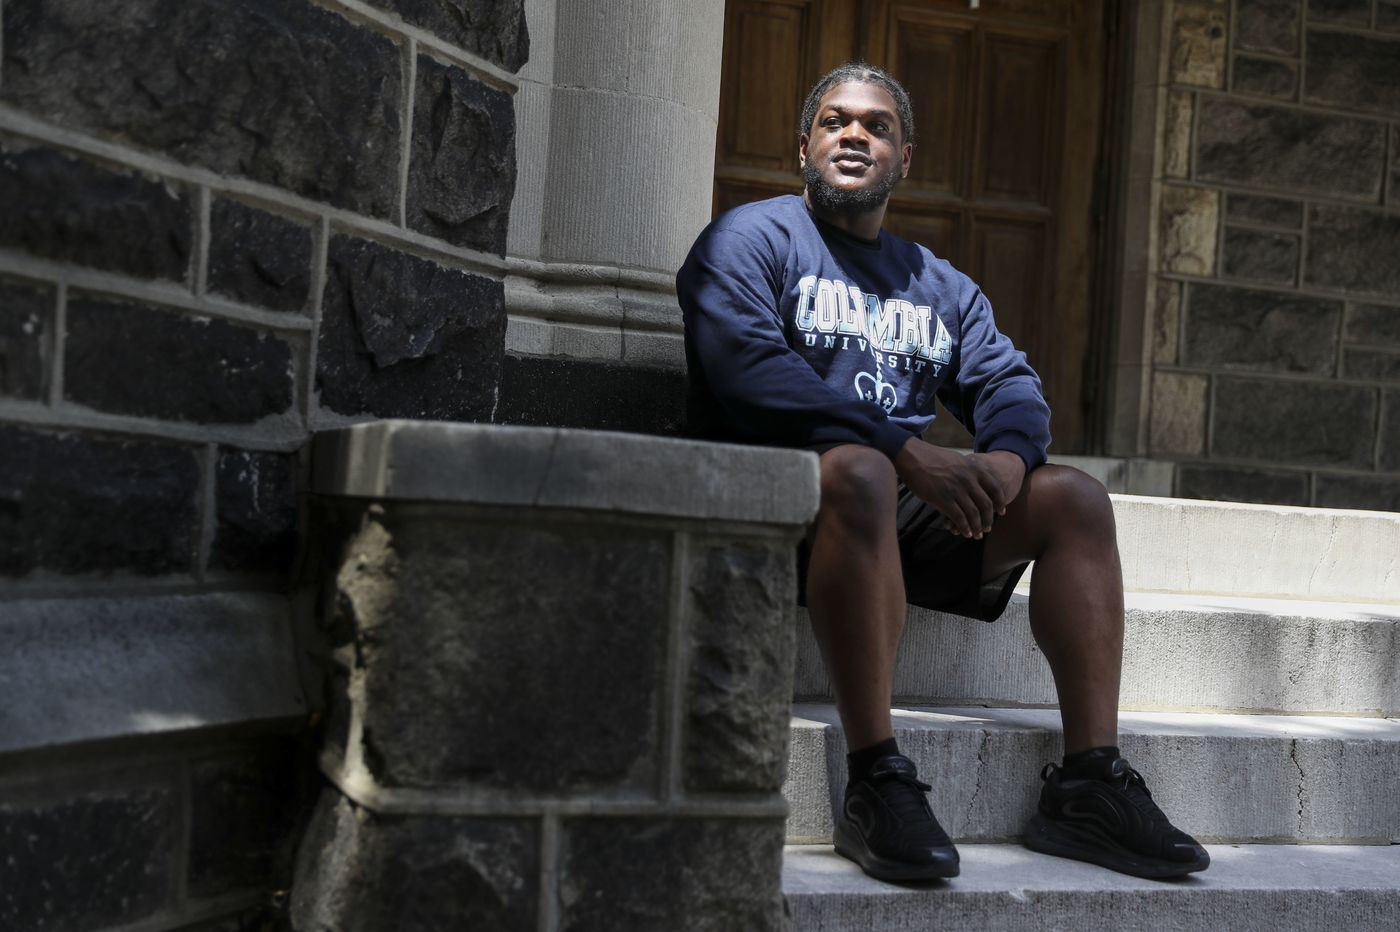 A young DACA recipient makes it to Columbia University. But can he afford to stay?